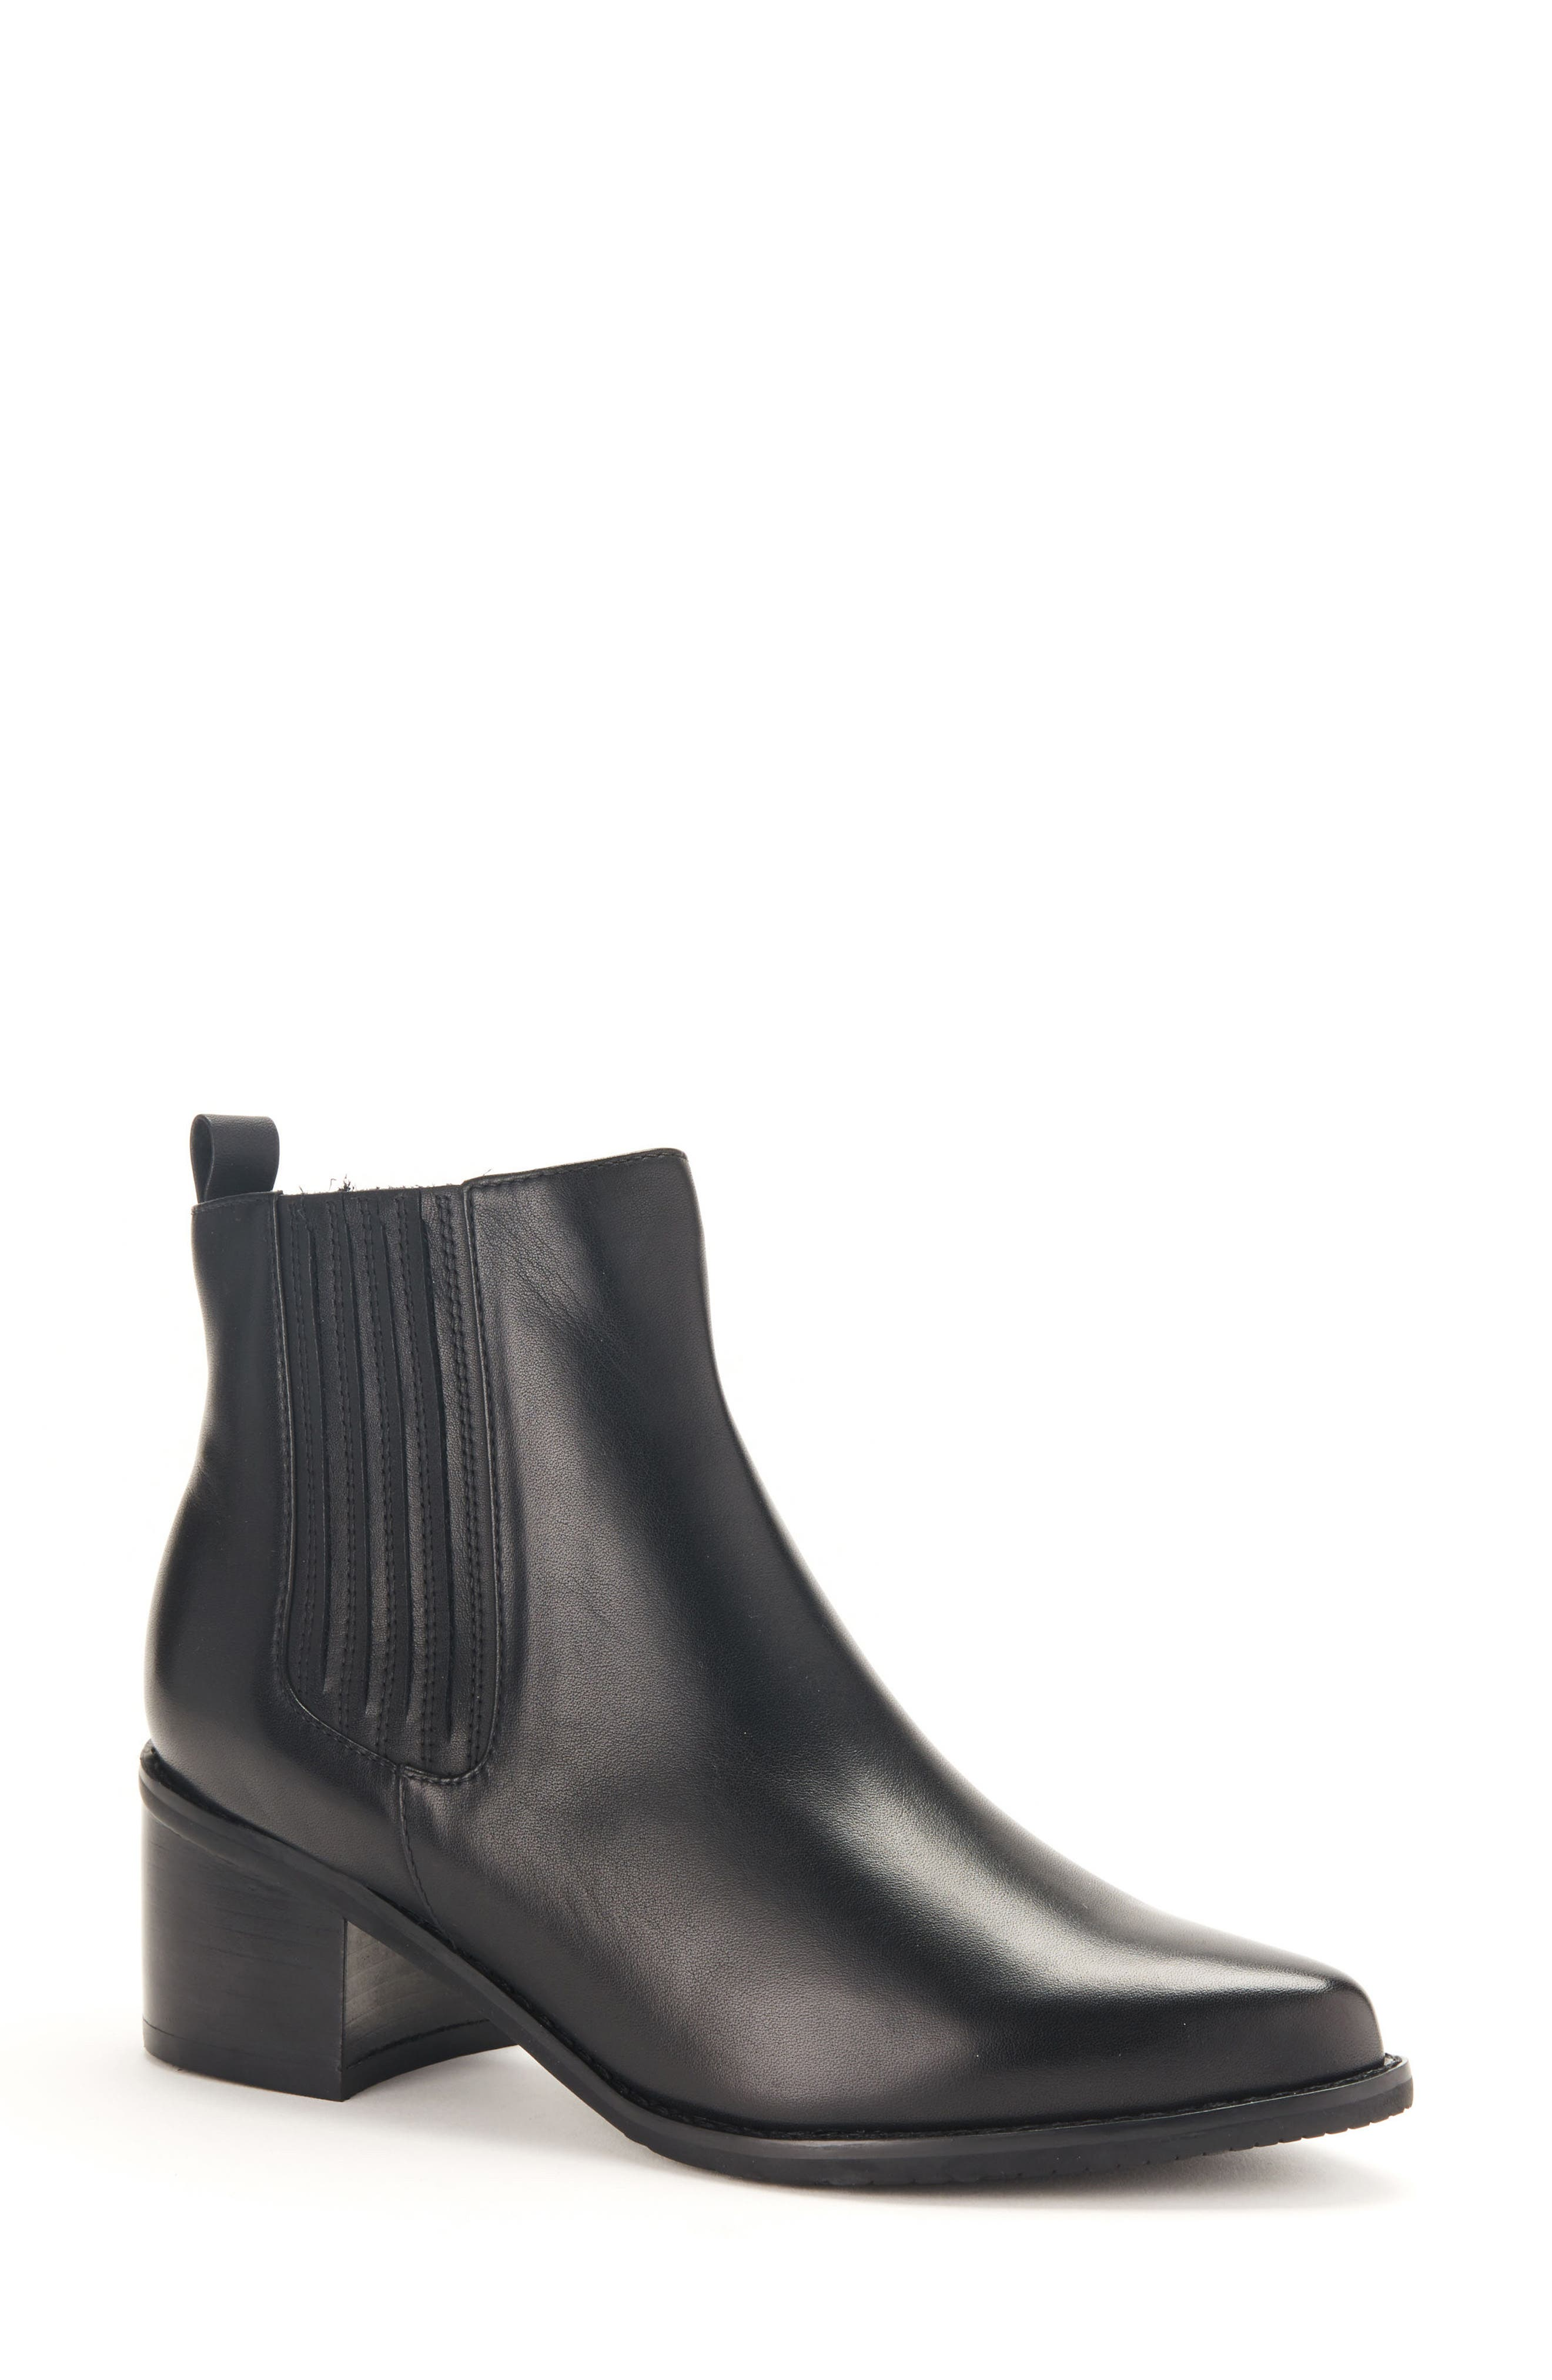 Elvina Waterproof Bootie,                             Main thumbnail 1, color,                             Black Leather